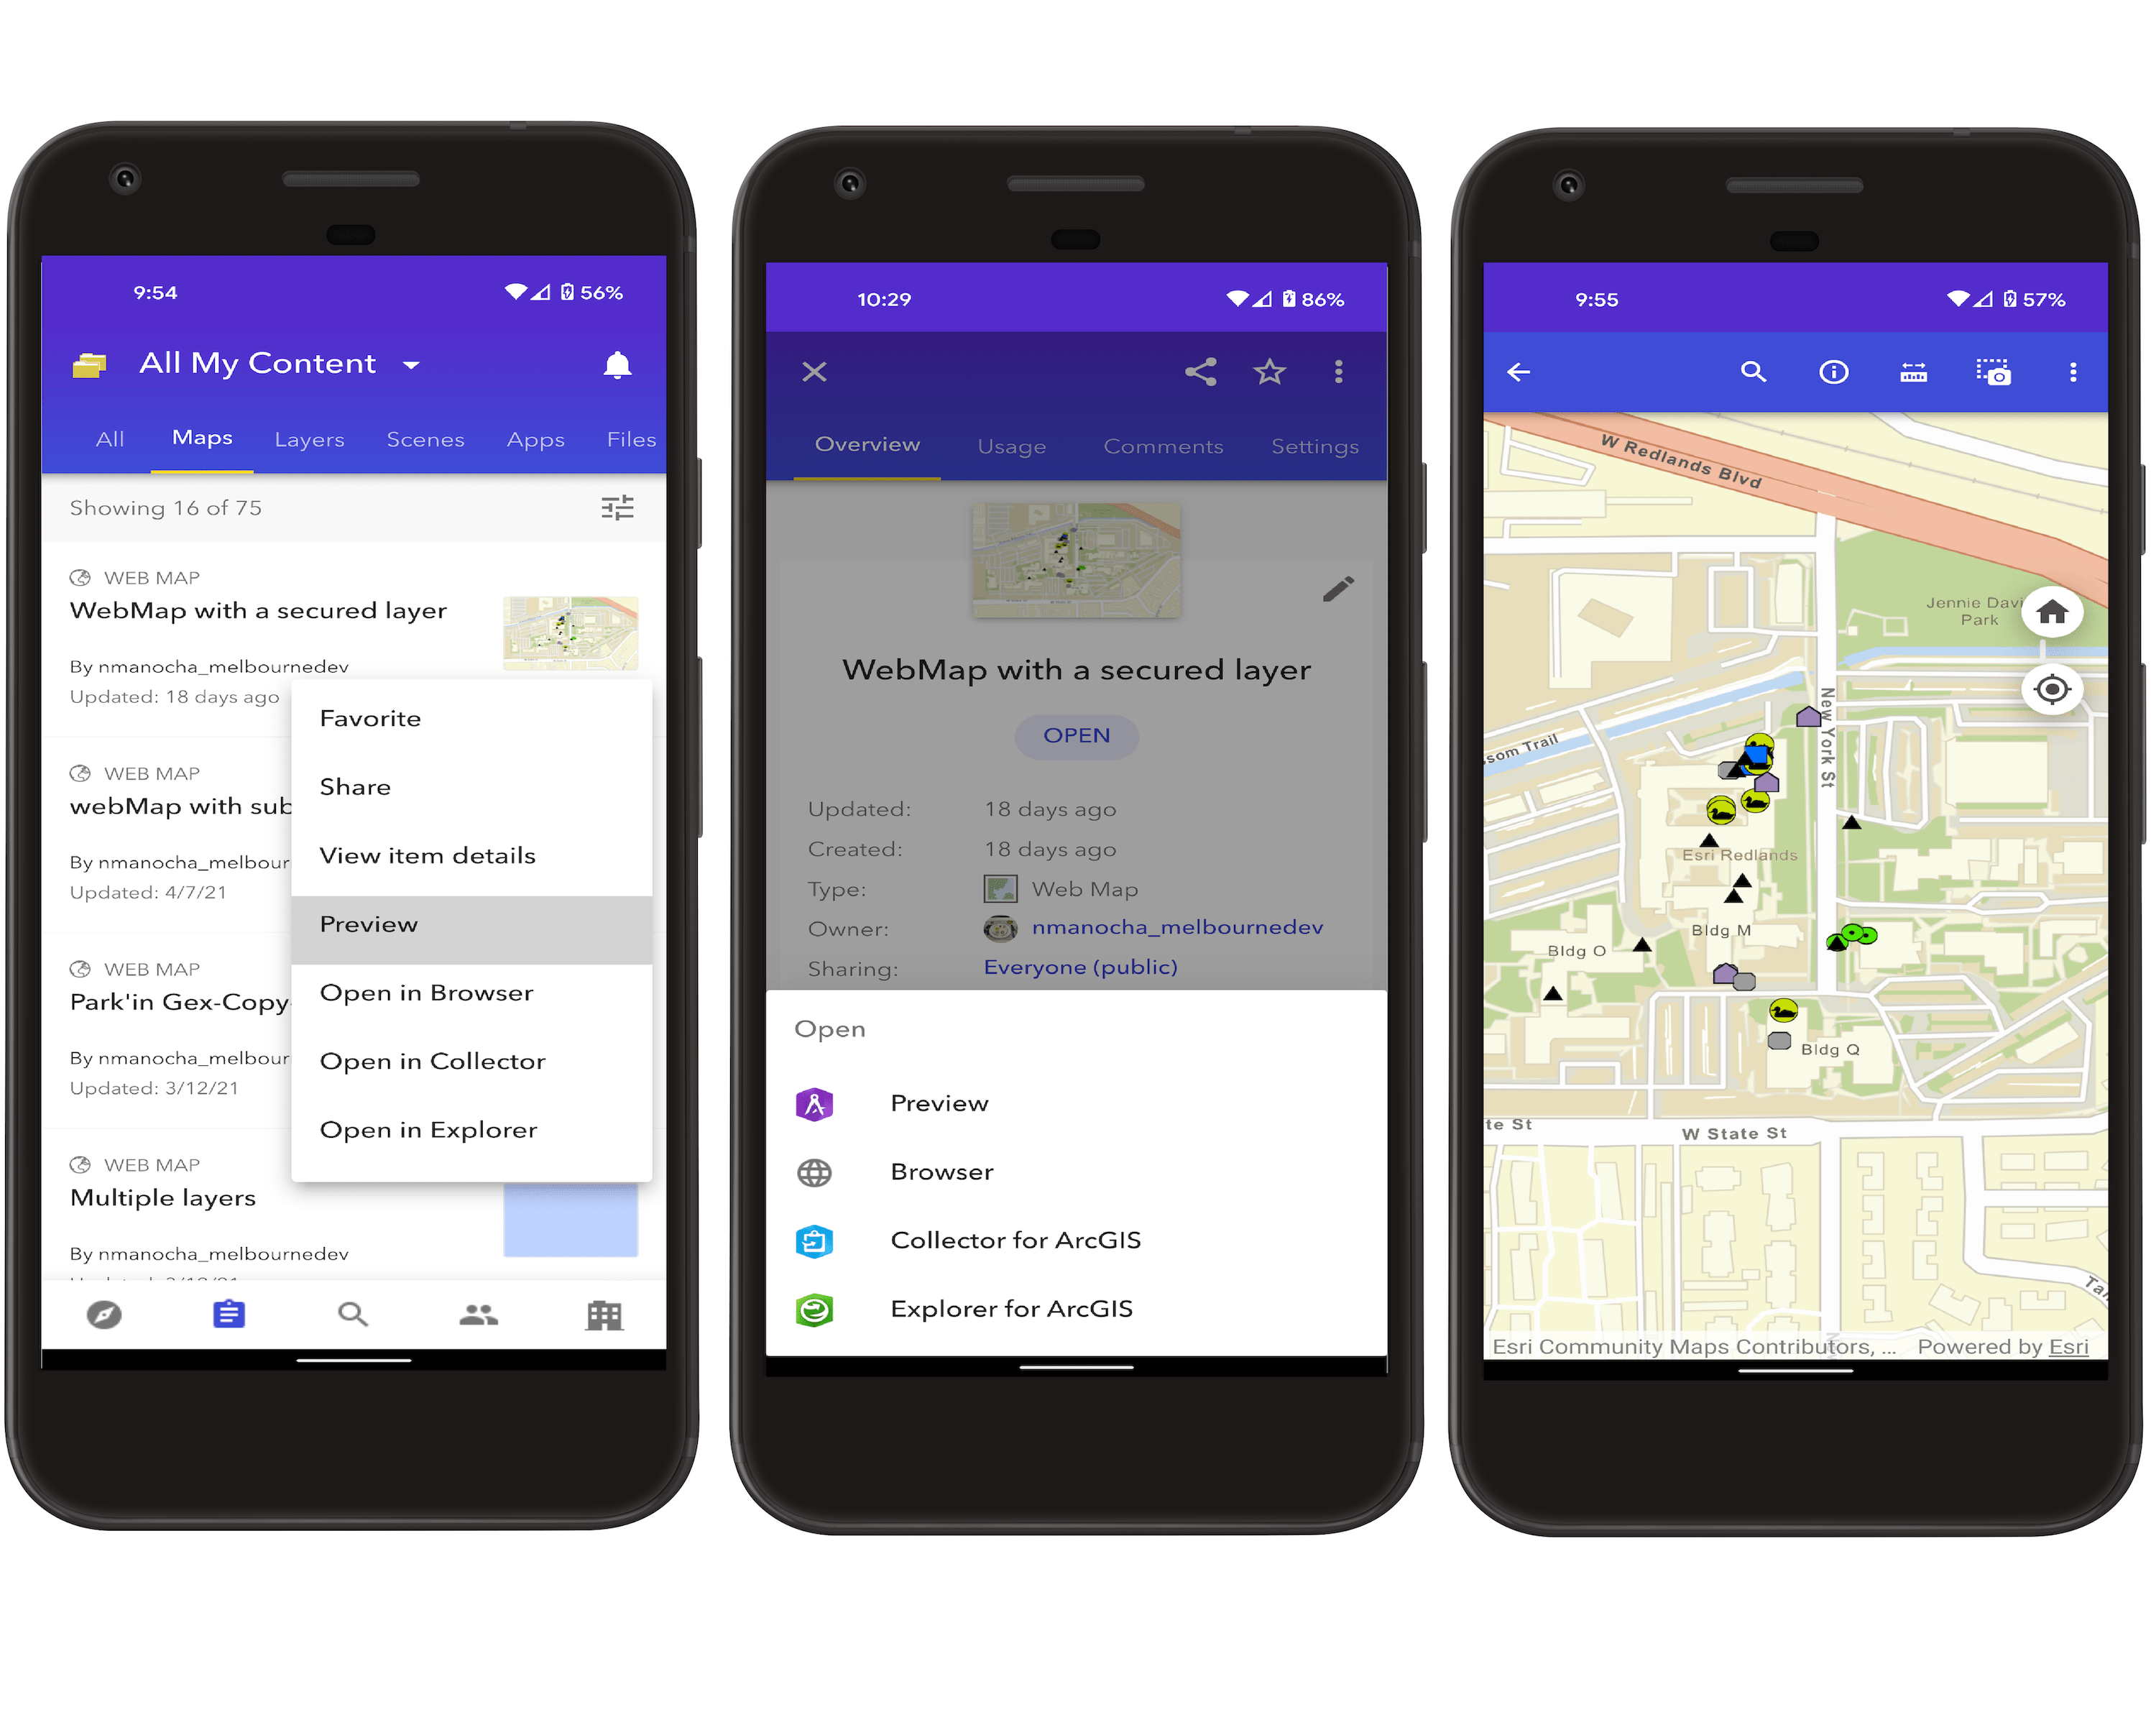 Preview web map within the app